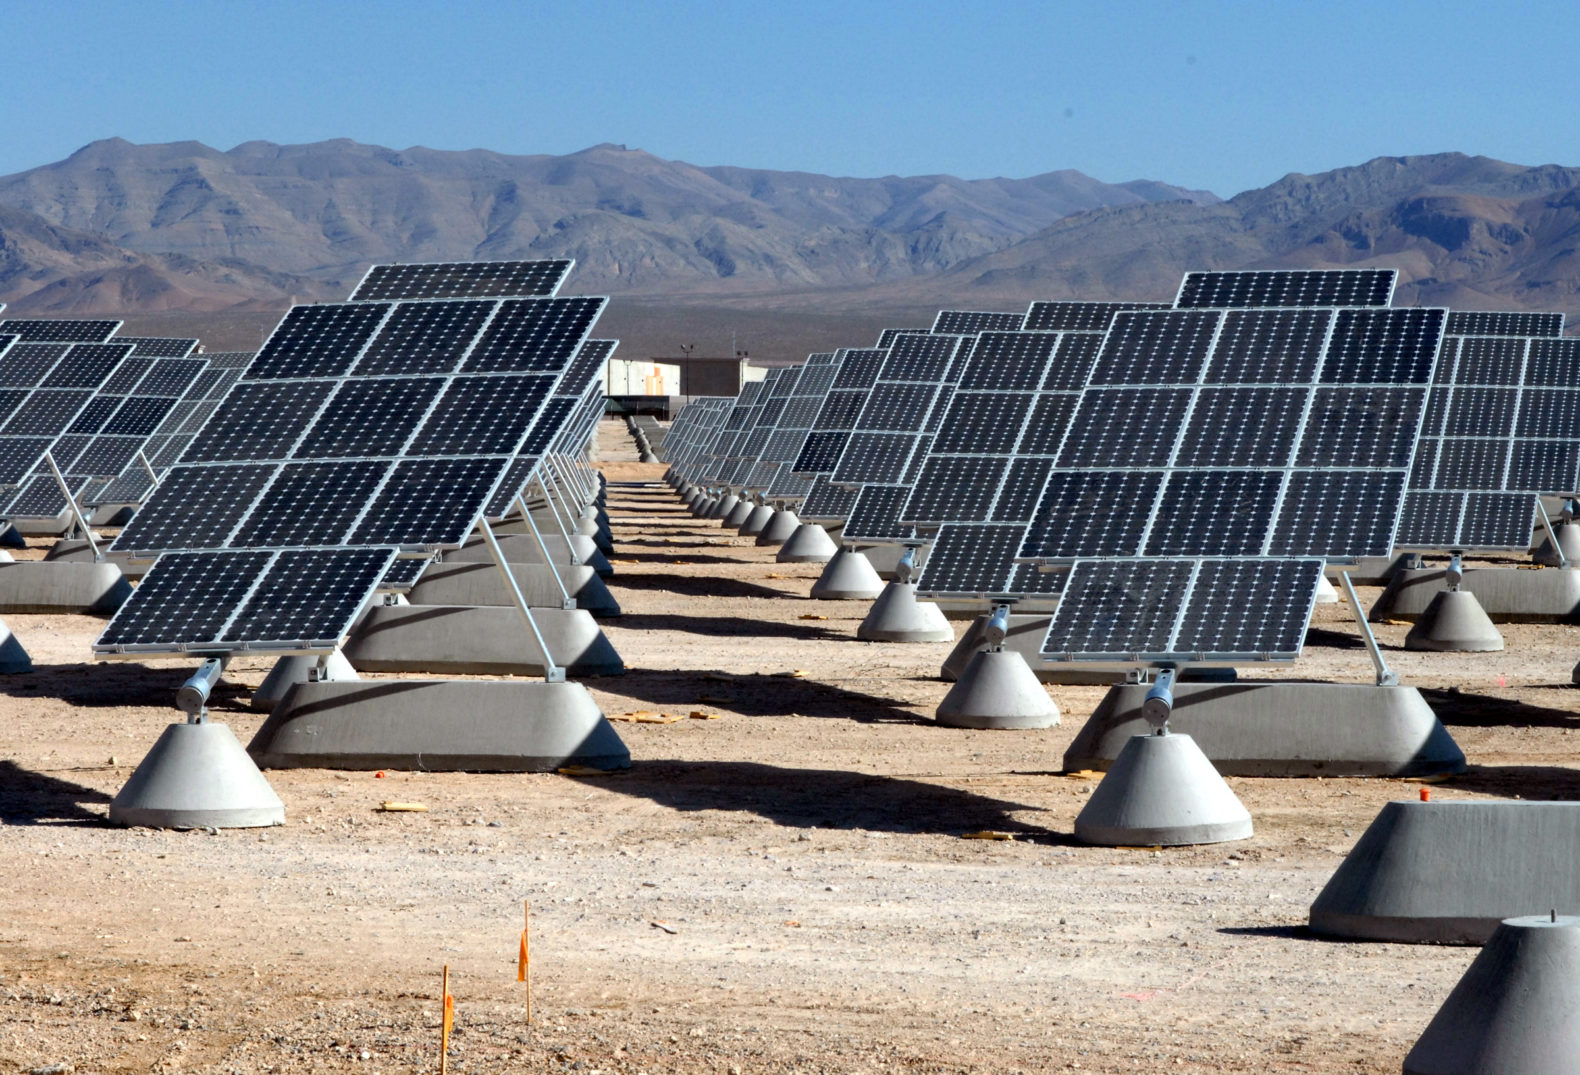 Electric cars and solar power could freeze fossil fuel growth by 2020